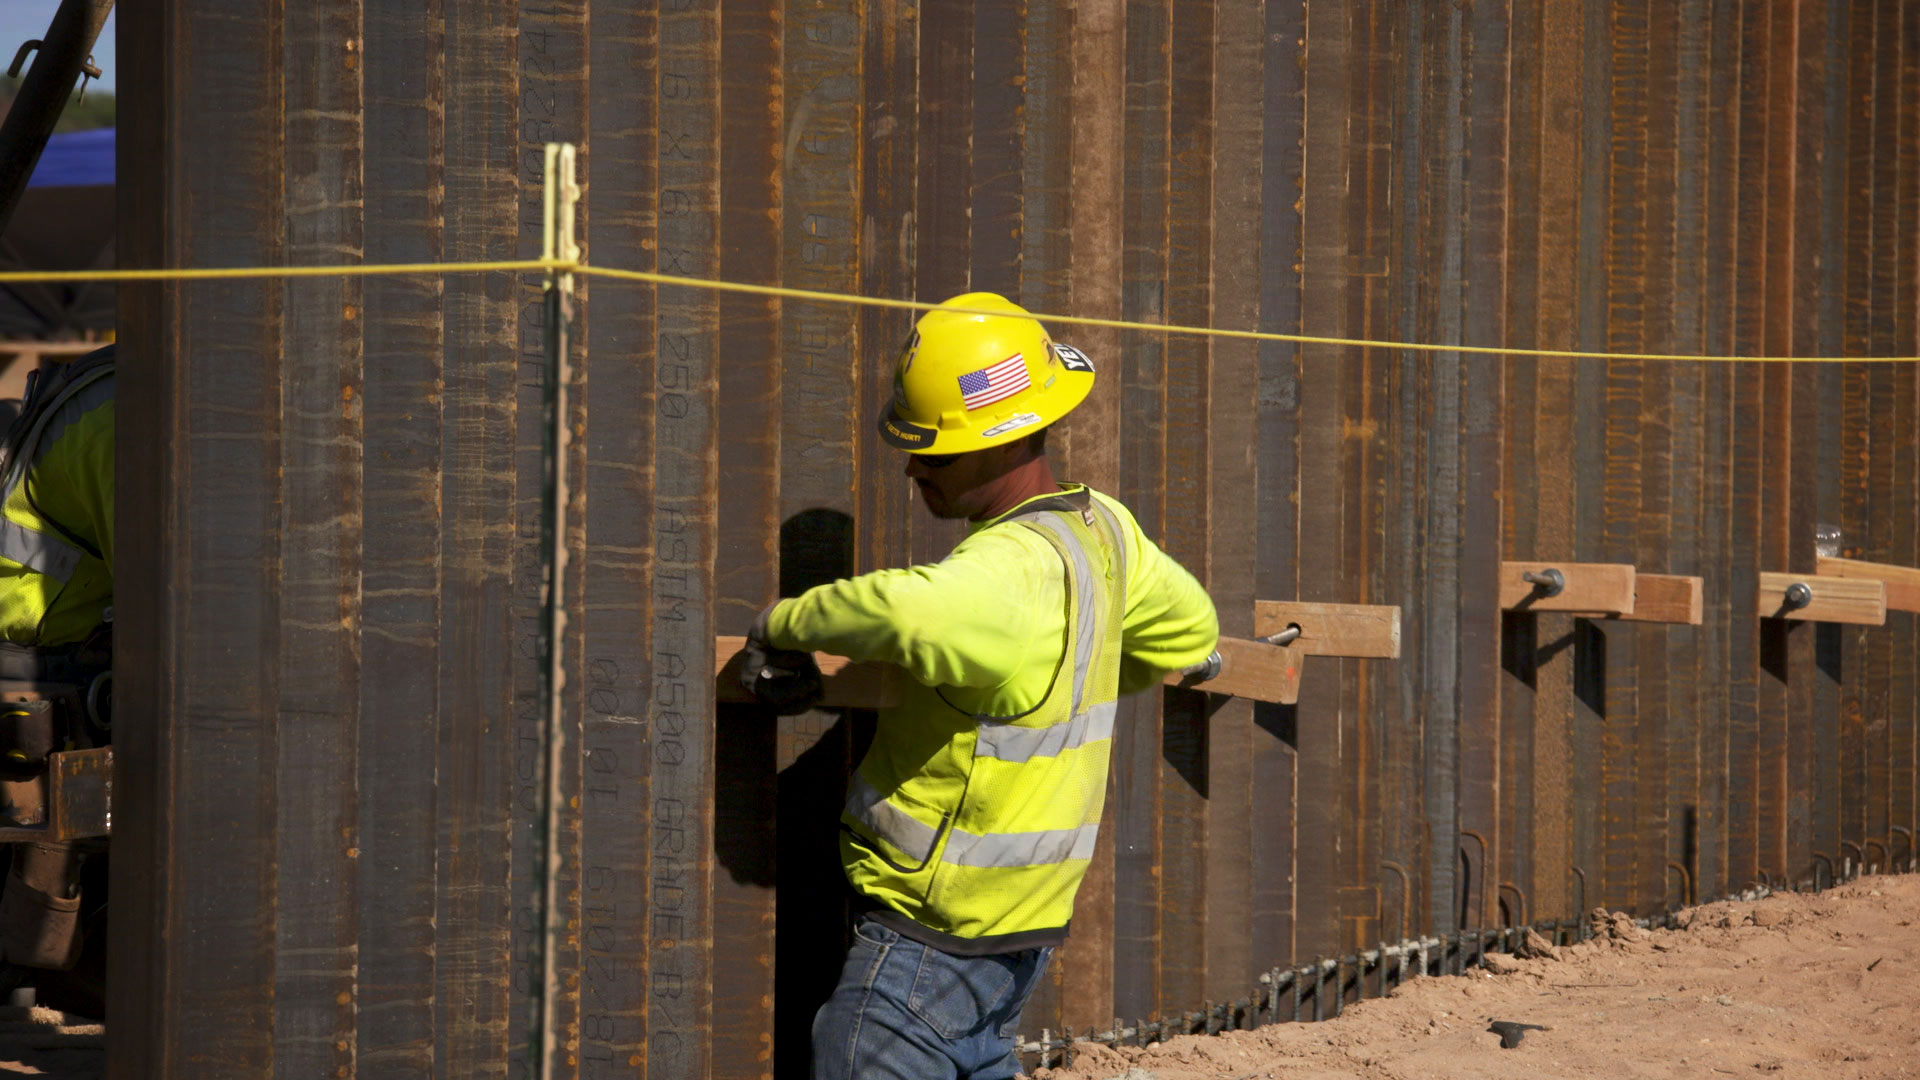 A construction worker works on installing 30-foot bollard fencing along Arizona's border with Mexico in Organ Pipe Cactus National Monument, February 2020.